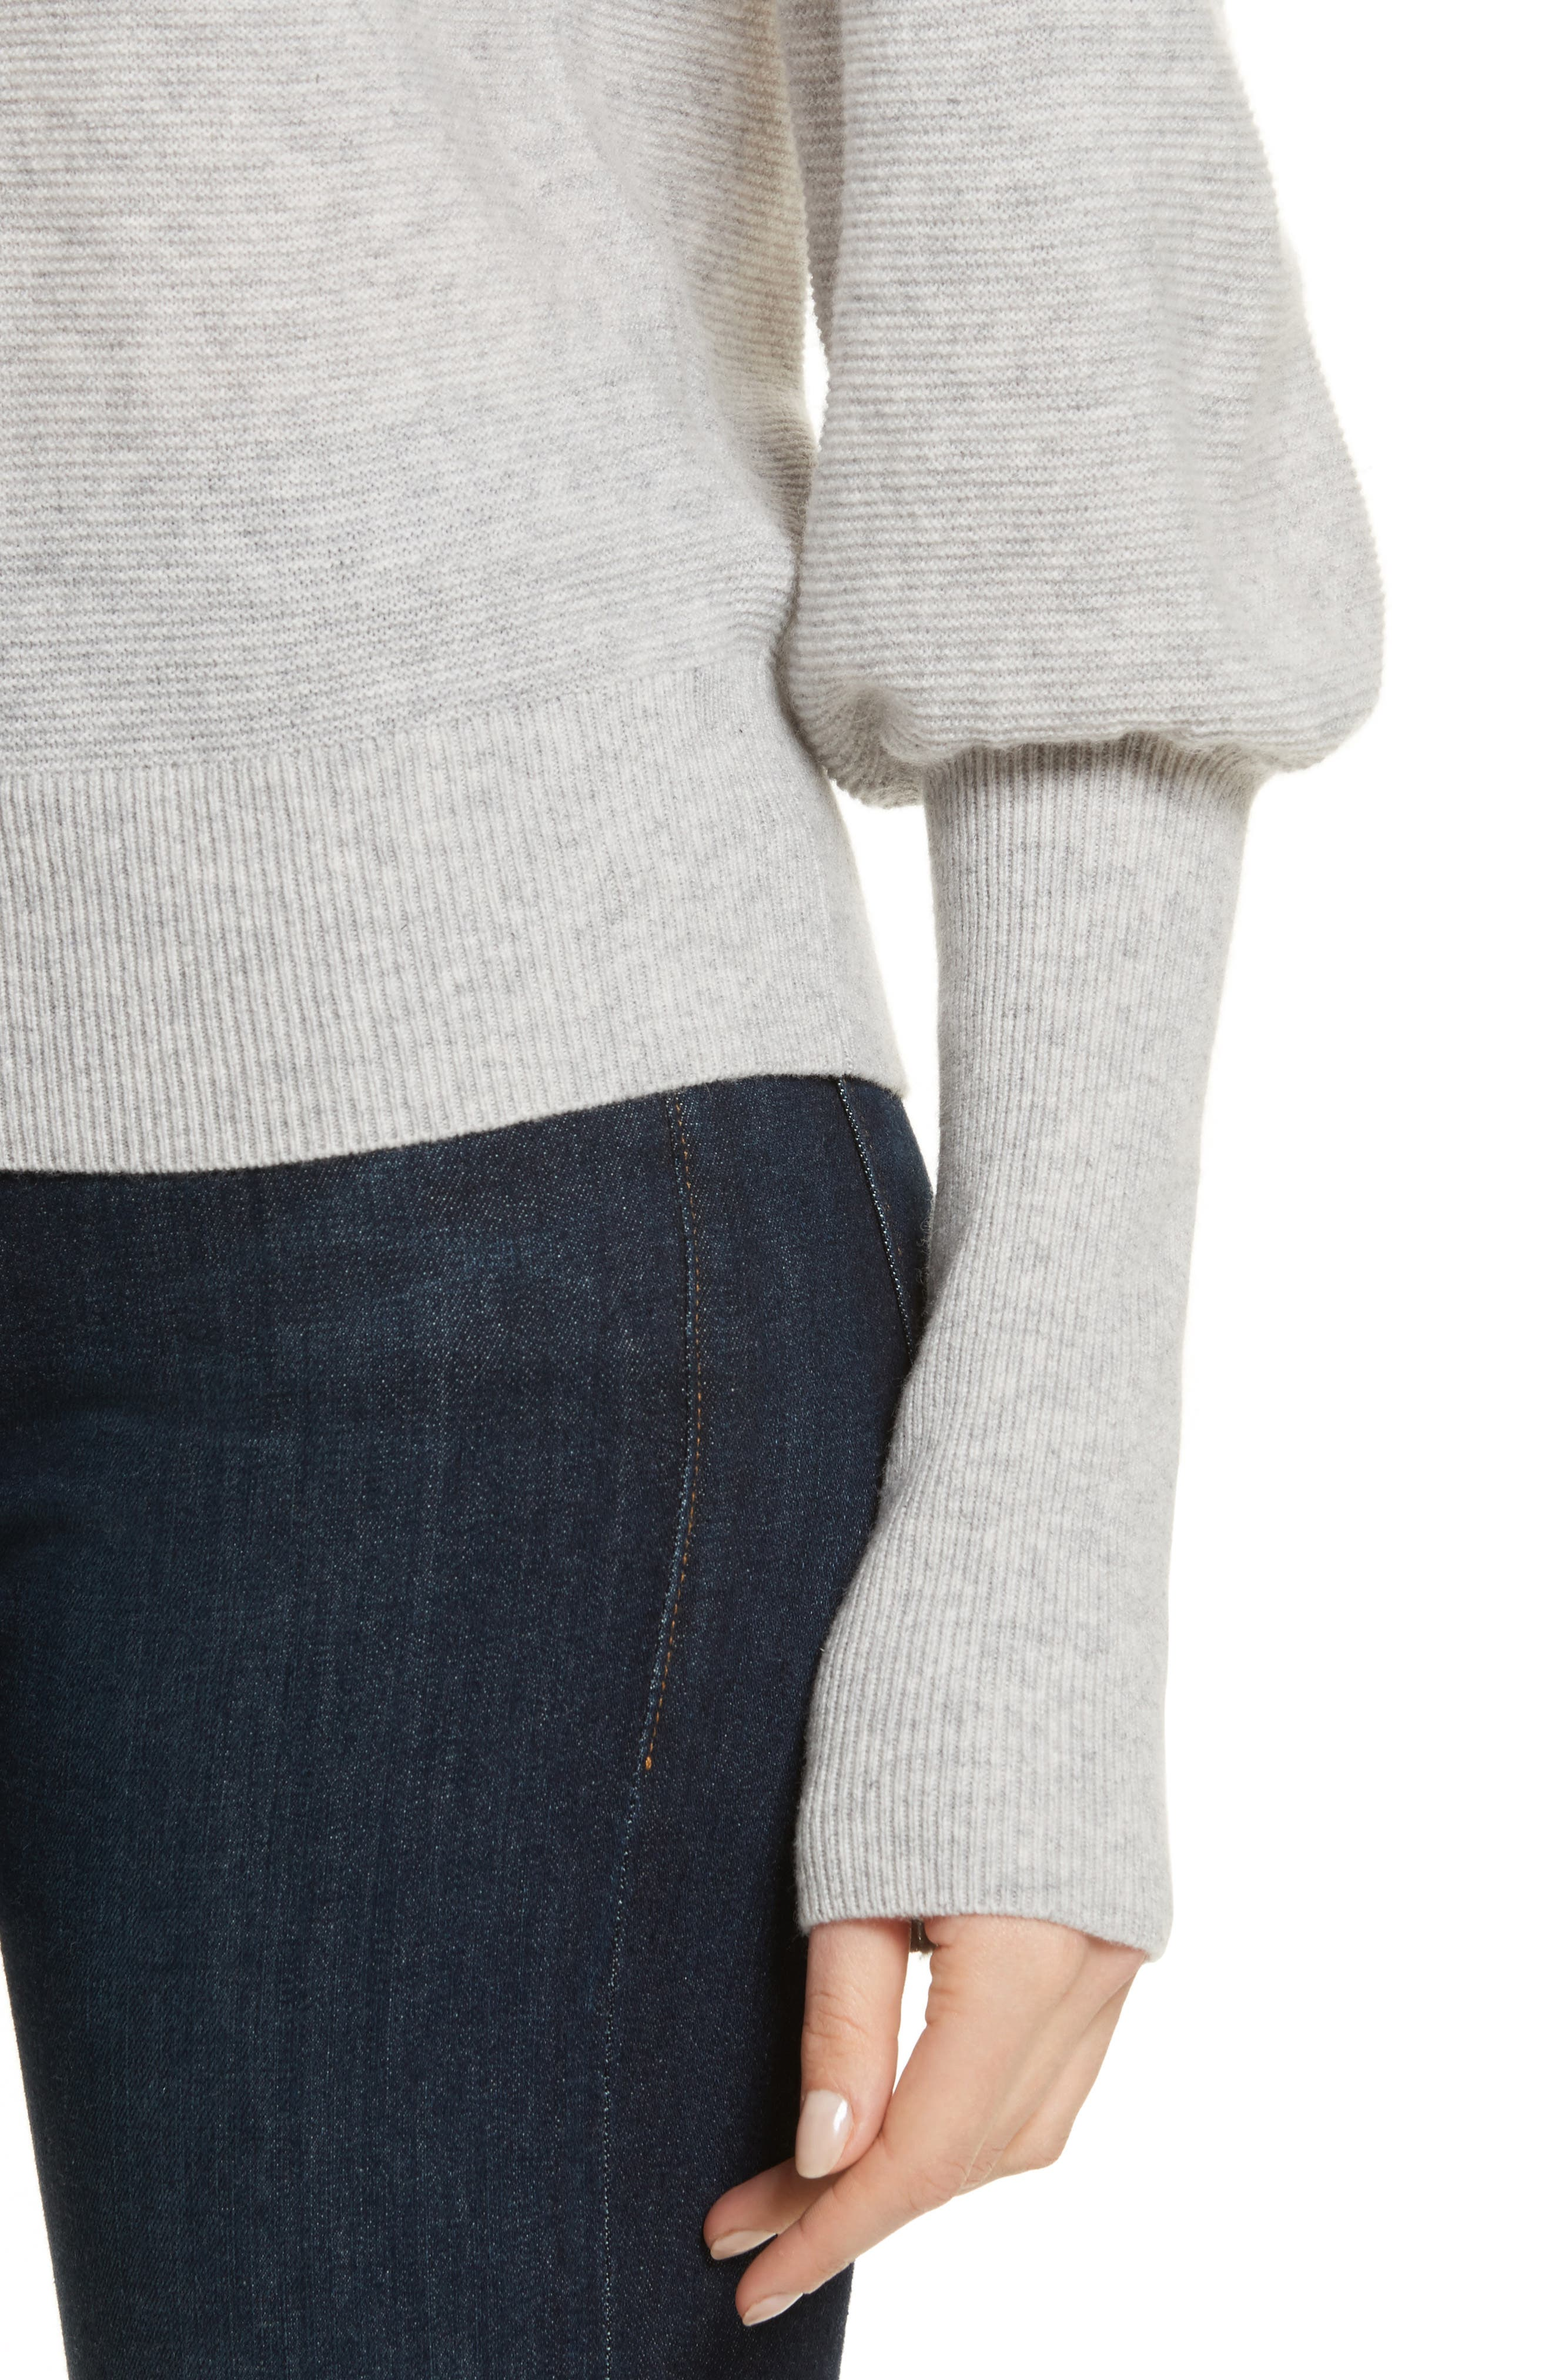 Noely Wool and Cashmere Sweater,                             Alternate thumbnail 4, color,                             Light Heather Grey